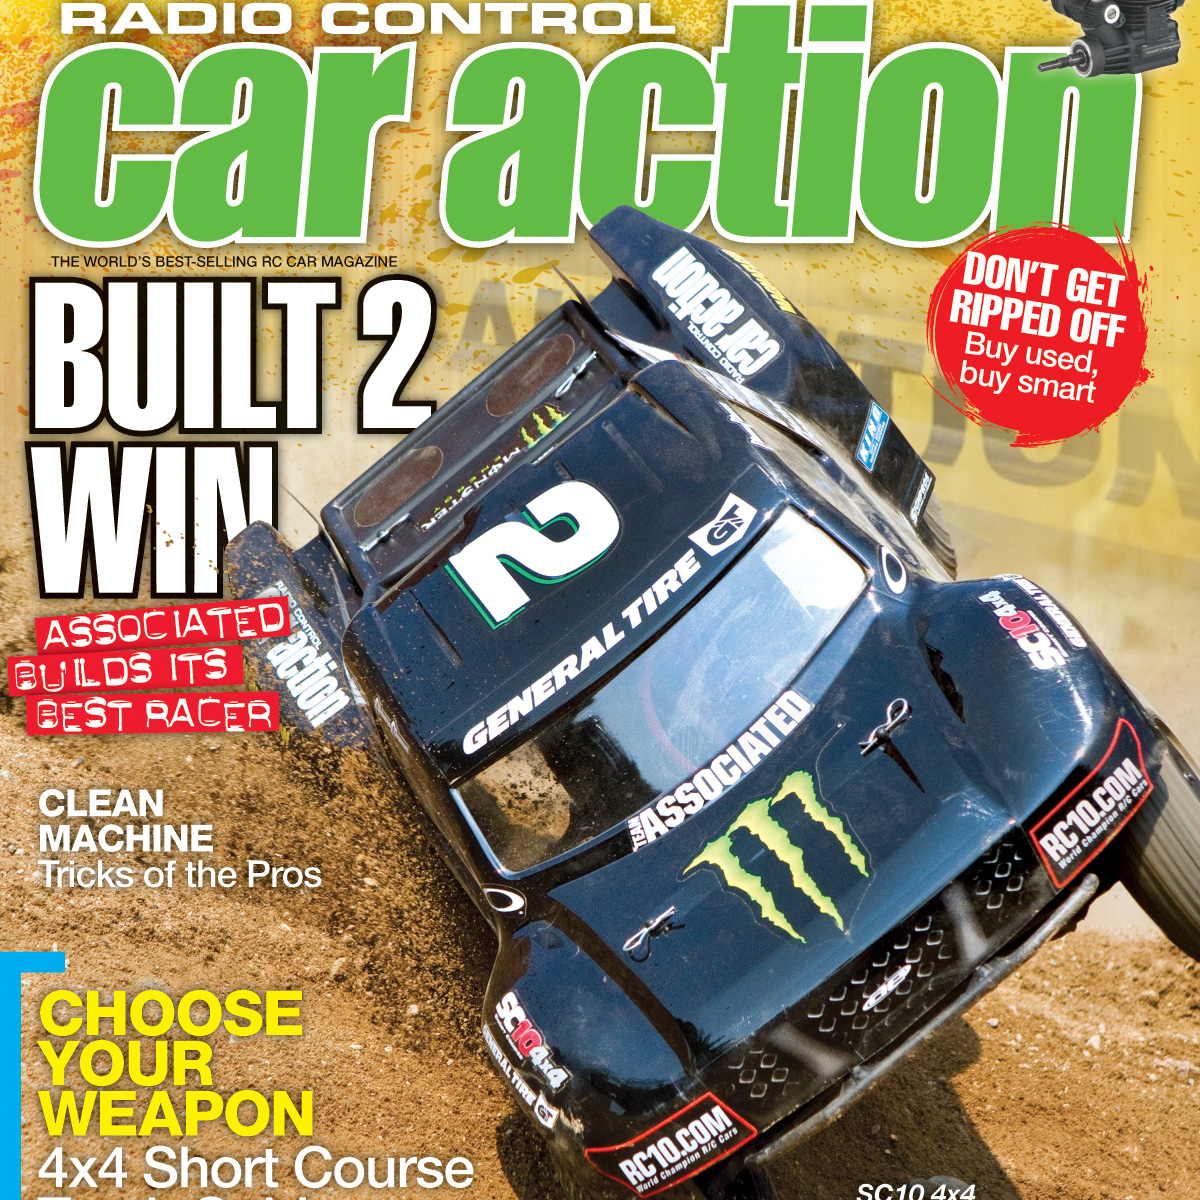 December 2011 issue on sale now.  Check out some pics from the issue!!